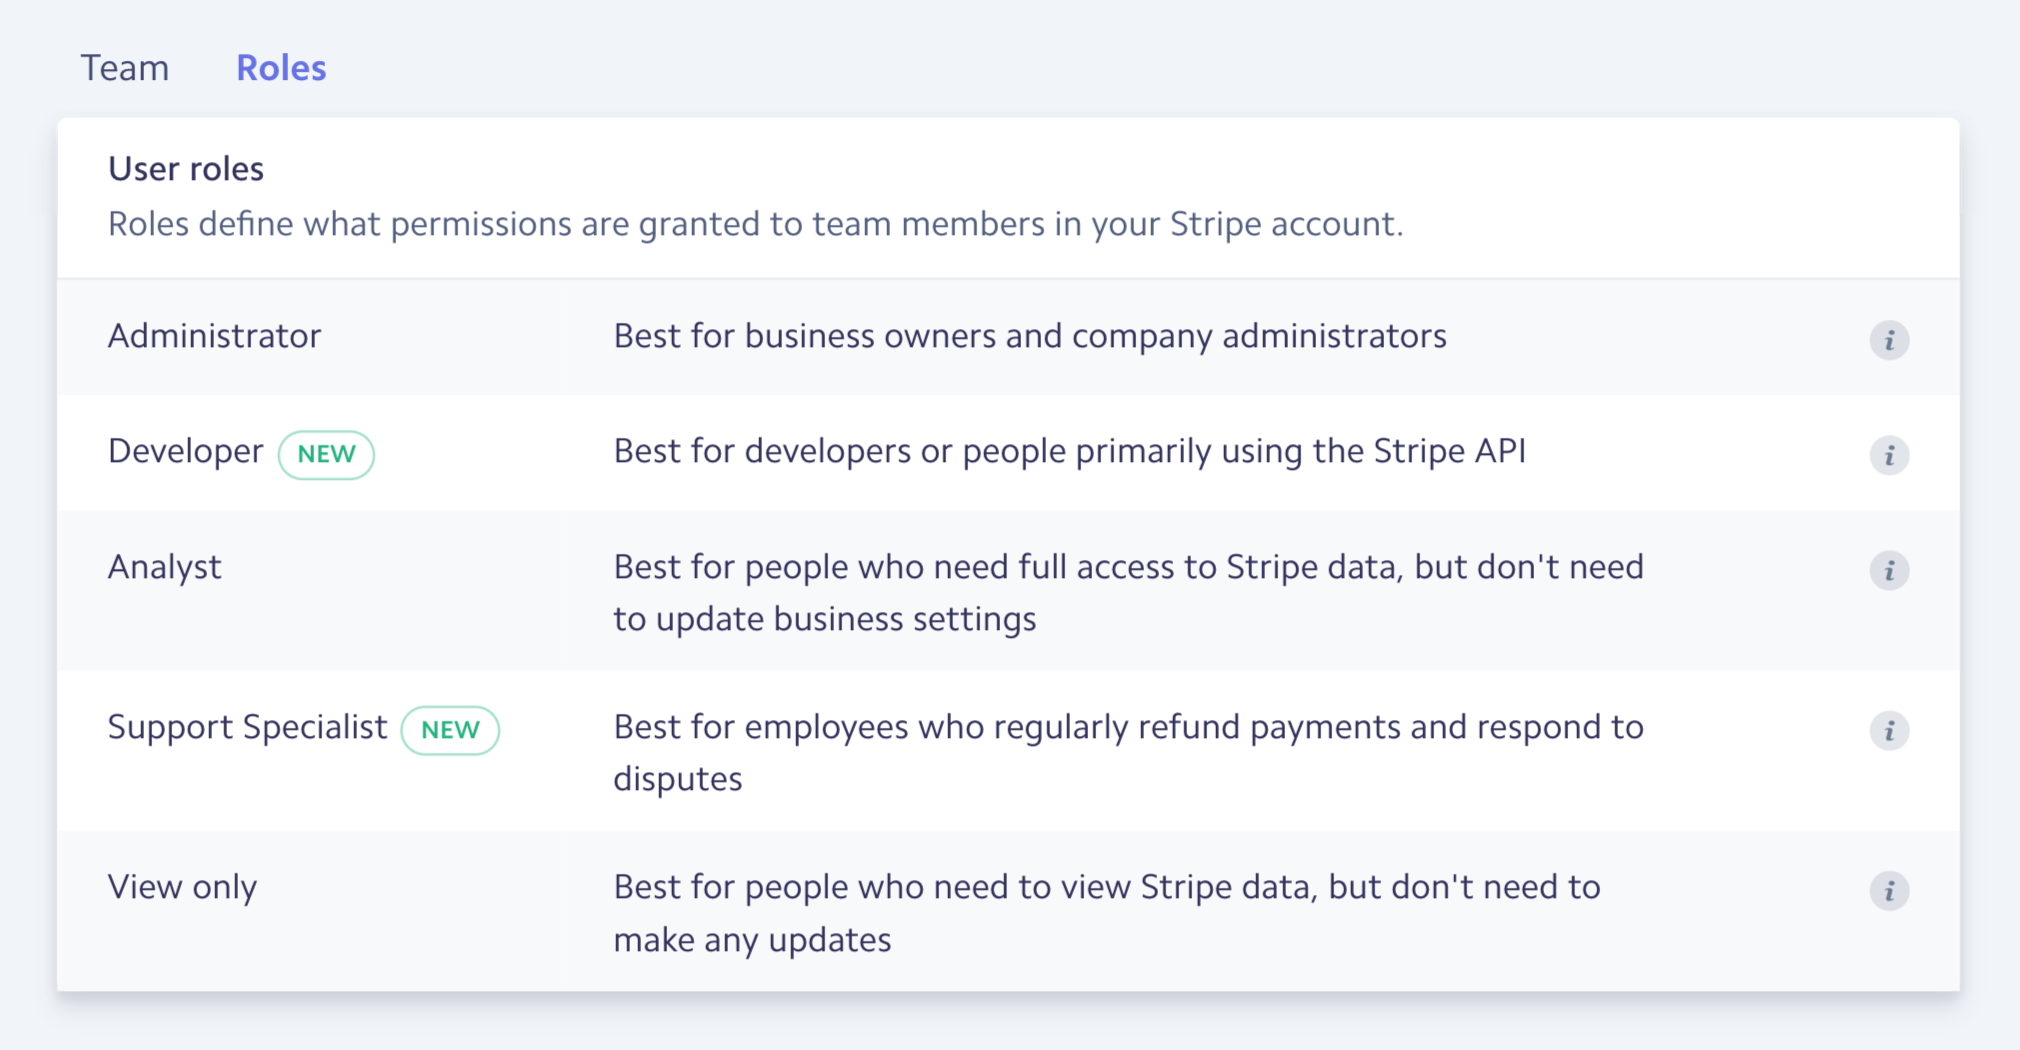 A screenshot of the 'Roles' interface in the Stripe Dashboard